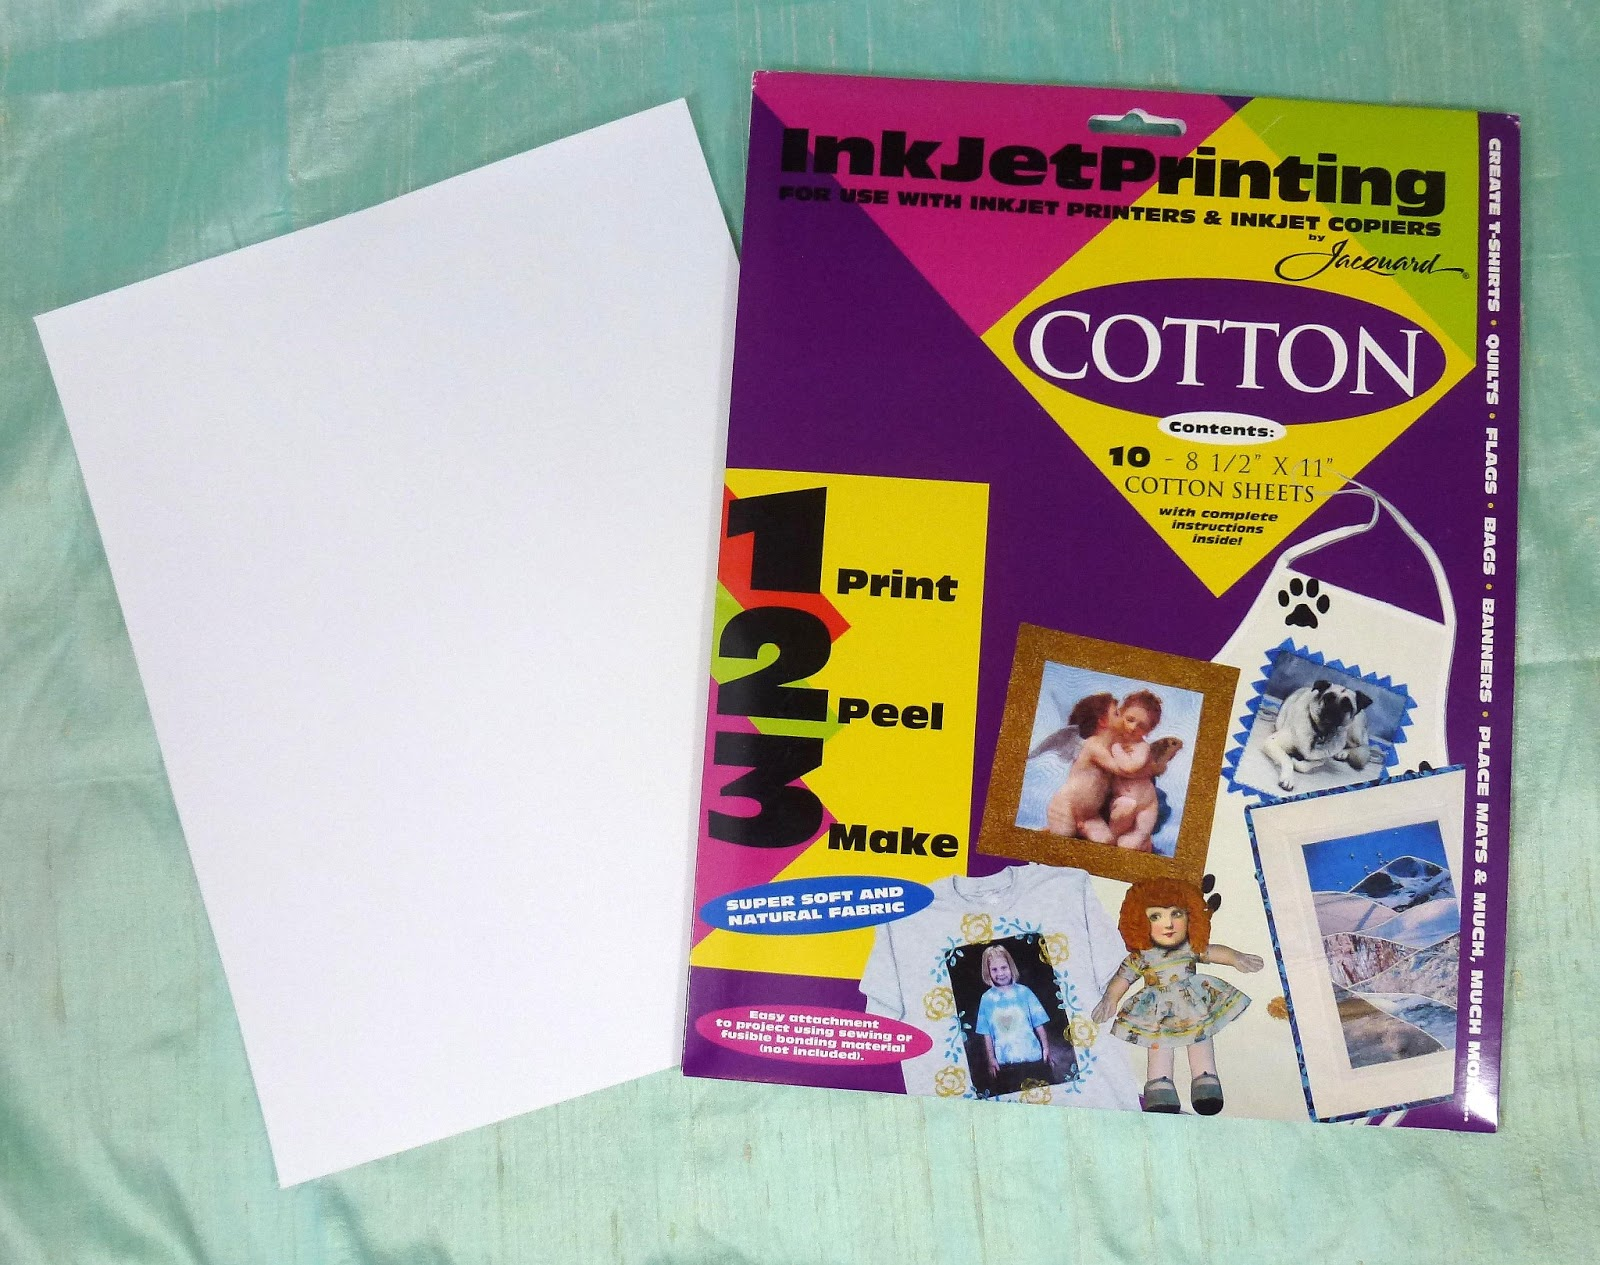 Sly image with regard to printable fabric paper